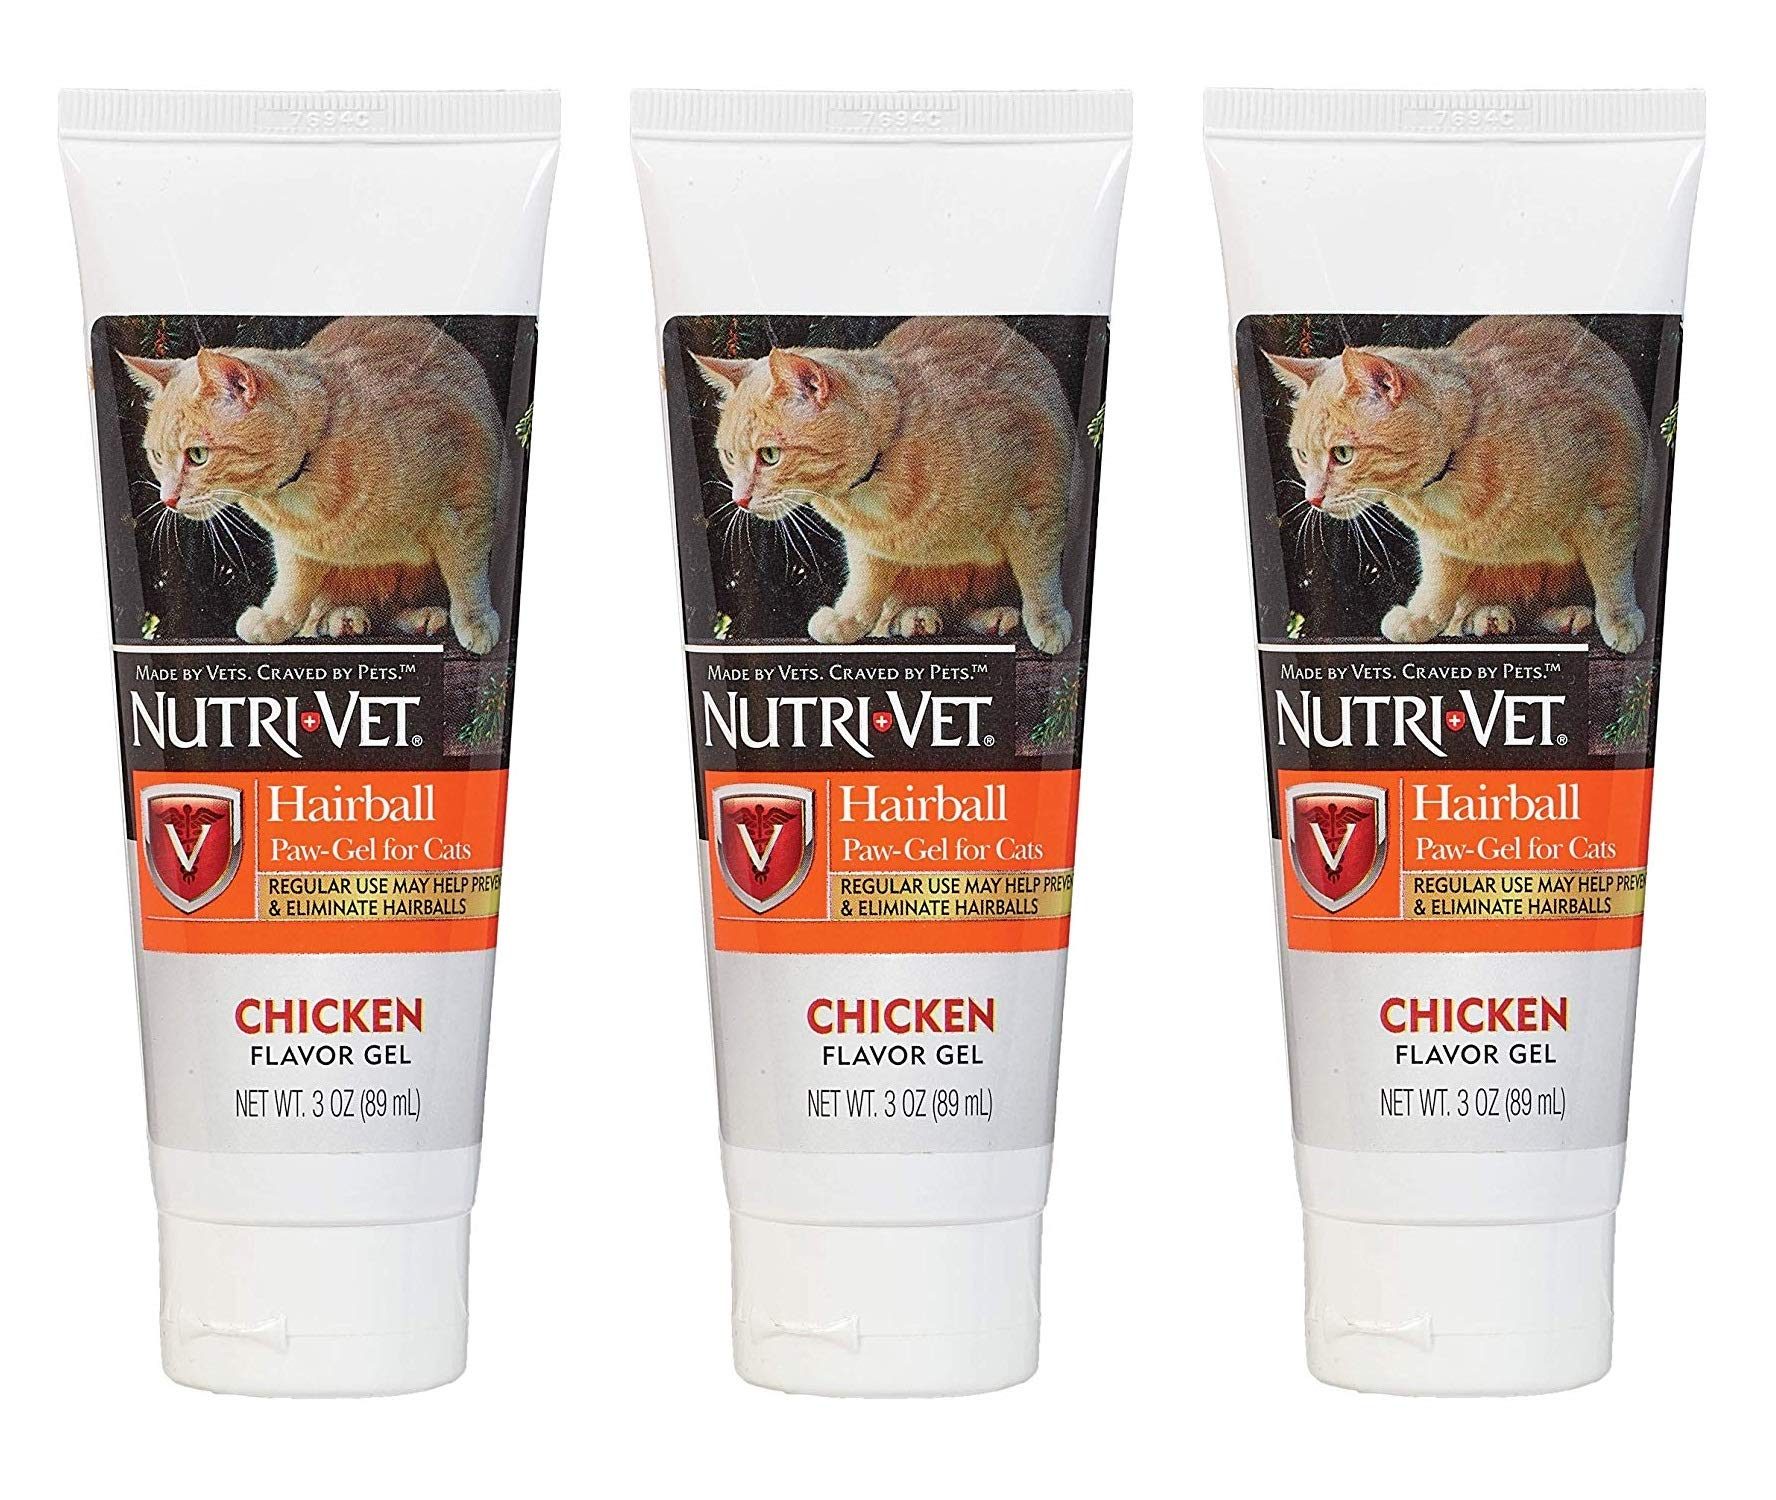 Nutri-Vet 3 Pack of Hairball Paw-Gel for Cats, 3 Ounces Each, Chicken Flavor by Nutri-Vet (Image #1)